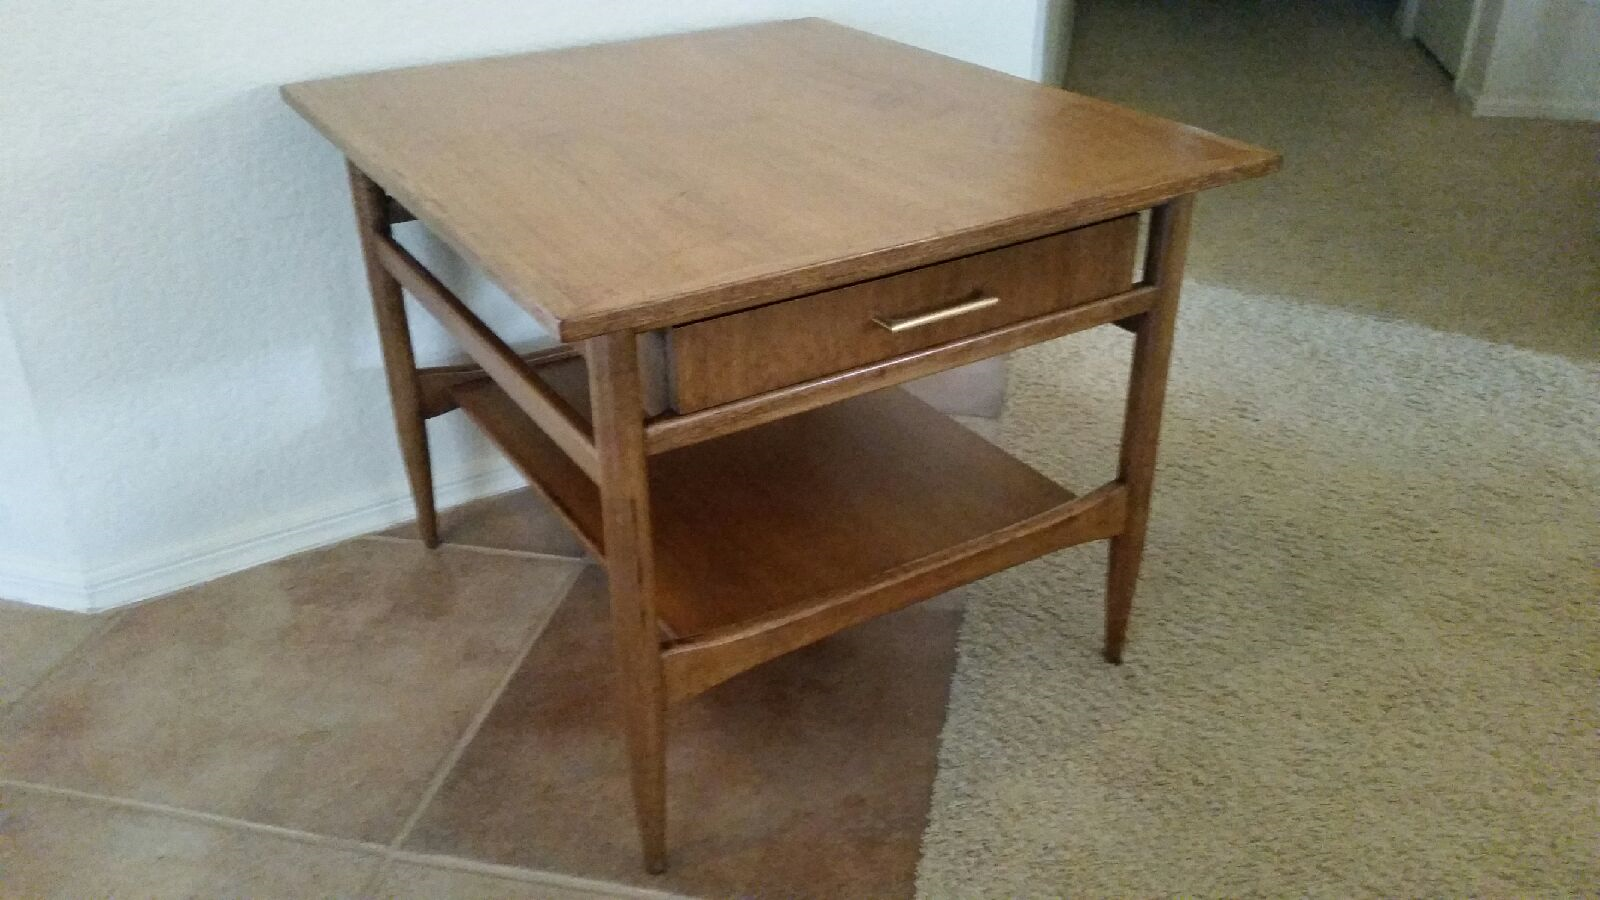 Beau Vintage Solid Wood End Table From Hekman Furniture.